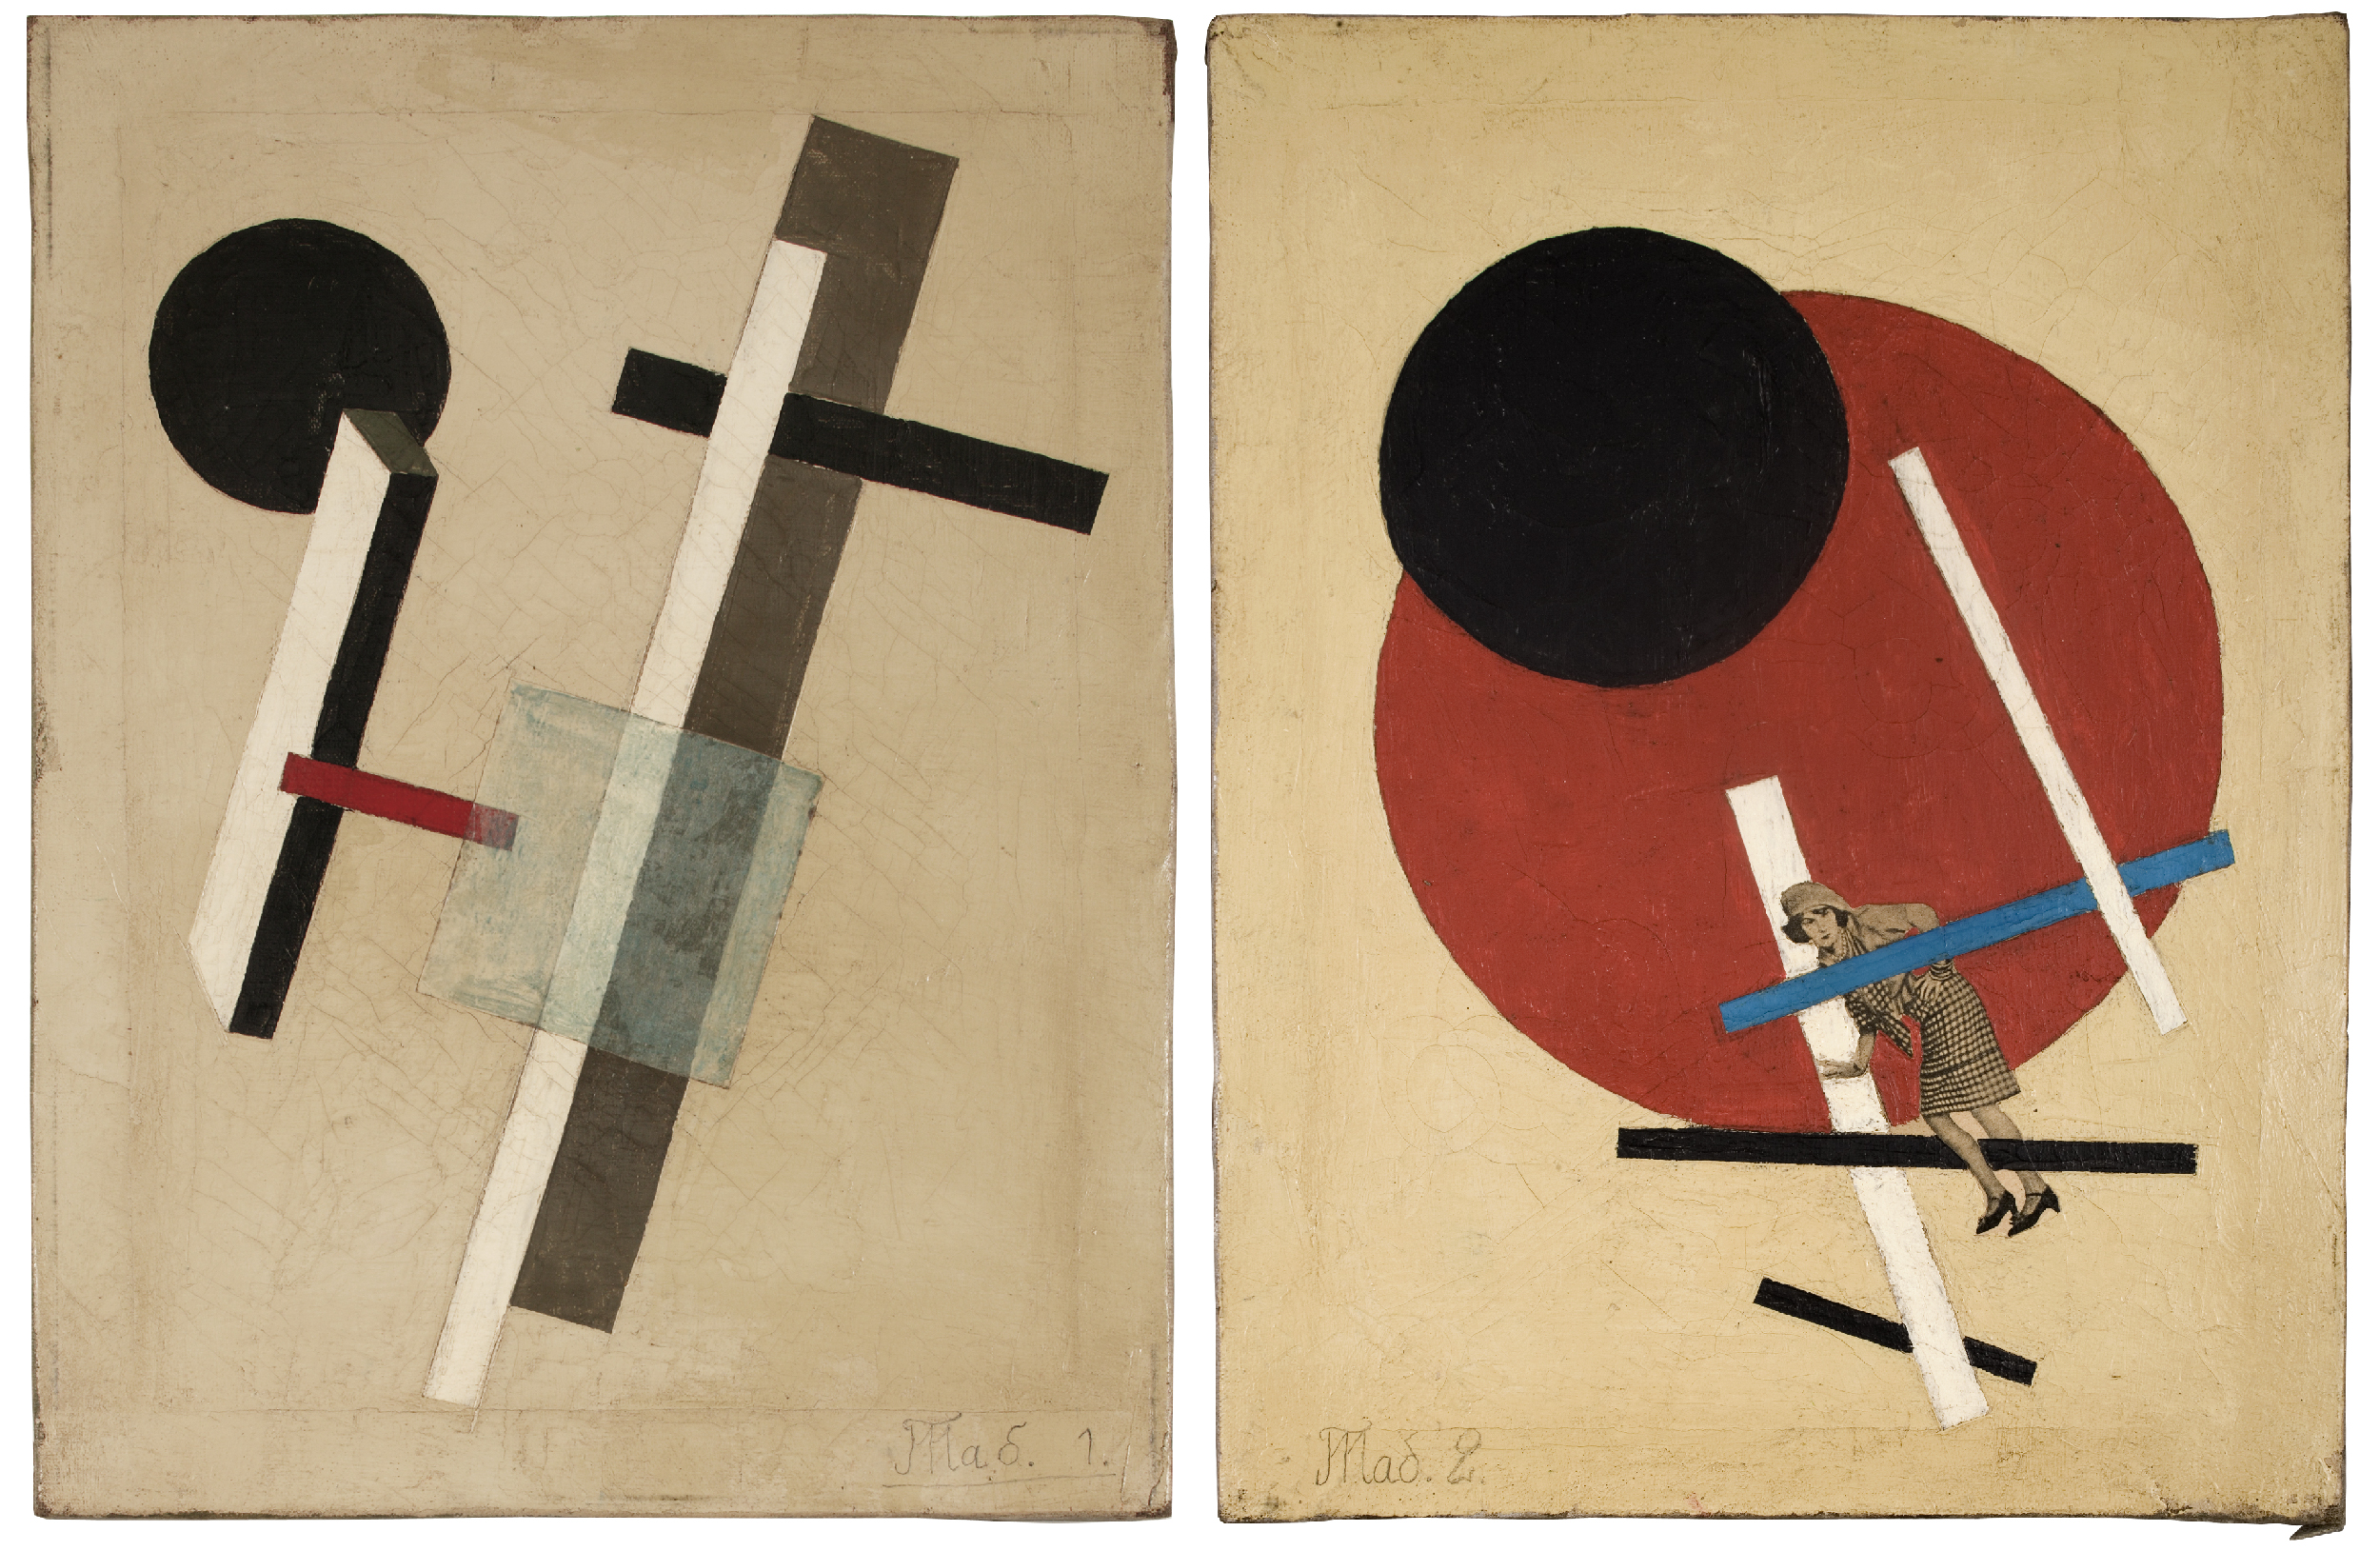 """Left: Unsigned. Unattributed. In the style of El Lissitzky. Text in Russian, lower left front, translates to """"Tab .1"""". Oil and collage on canvas. 40 x 30 cm.  Right: Unattributed. Unsigned. In the style of El Lissitzky. Text in Russian, lower left front, translates to """"Tab.2"""". Oil and collage on canvas. 40 x 30 cm."""